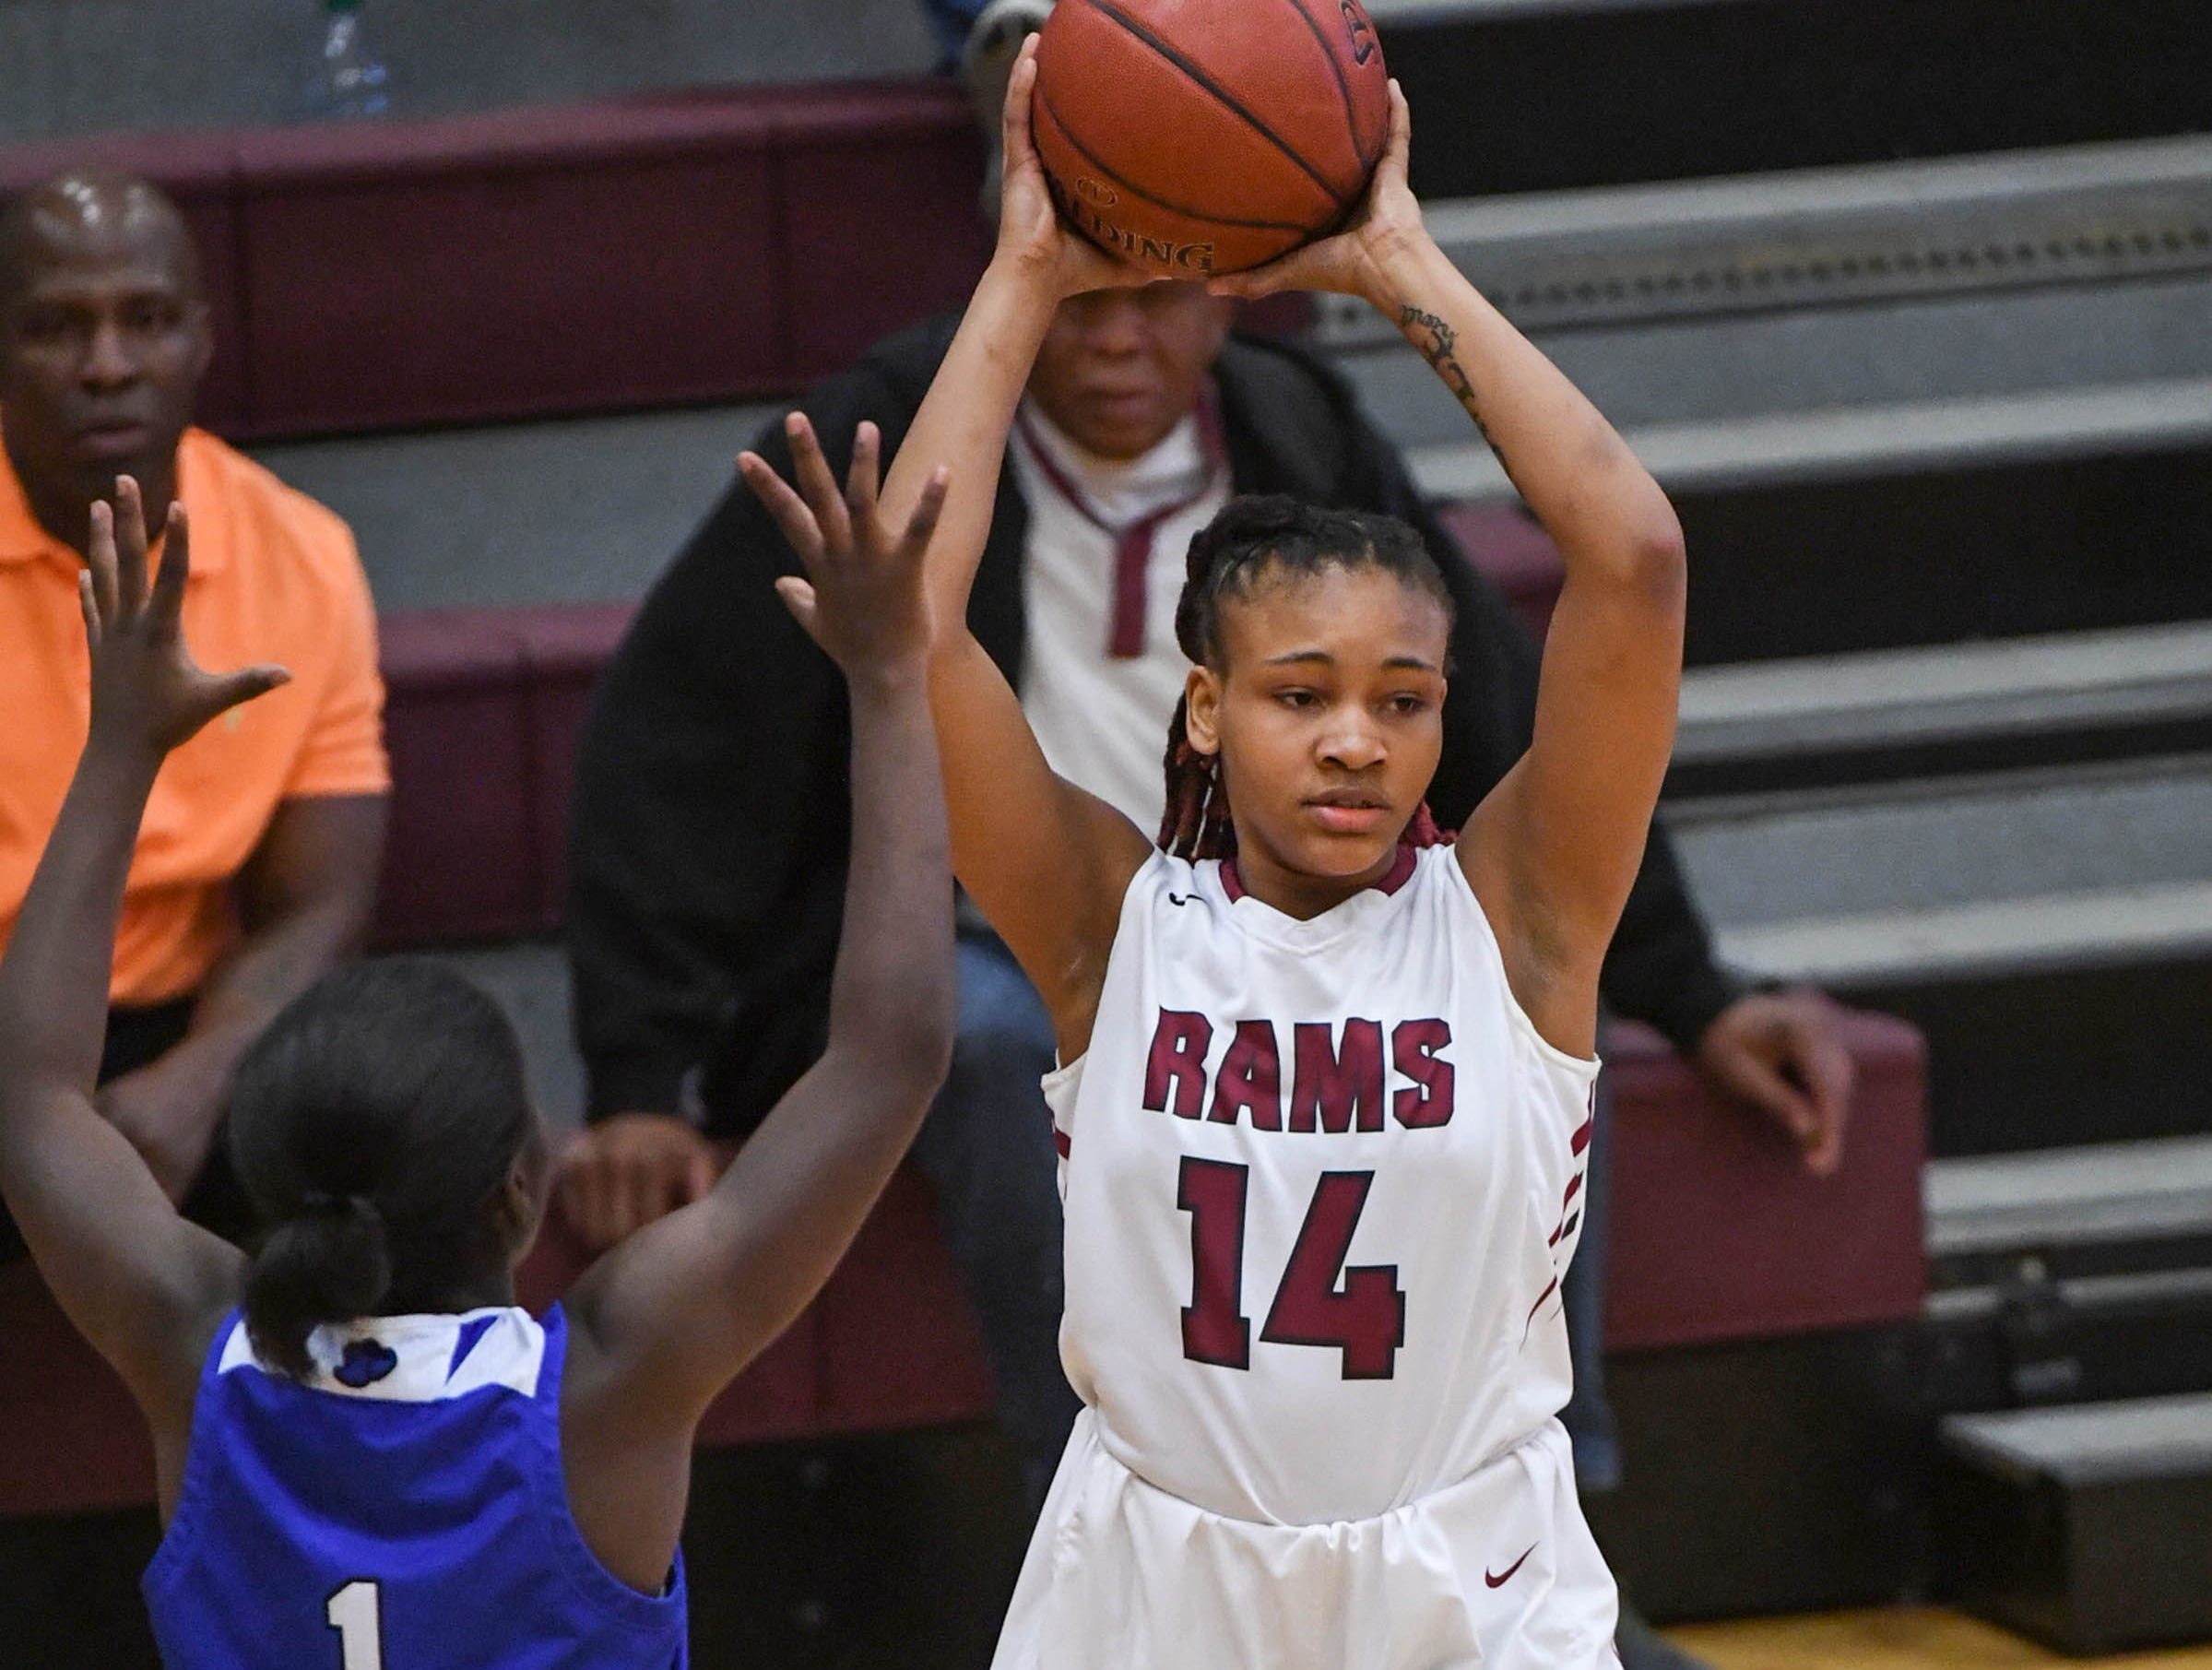 Westside junior Tatyana Lewis(14) gets ready to pass near Woodmont freshman Mazari Bennett(1) during the first quarter at Westside High School in Anderson on Tuesday.